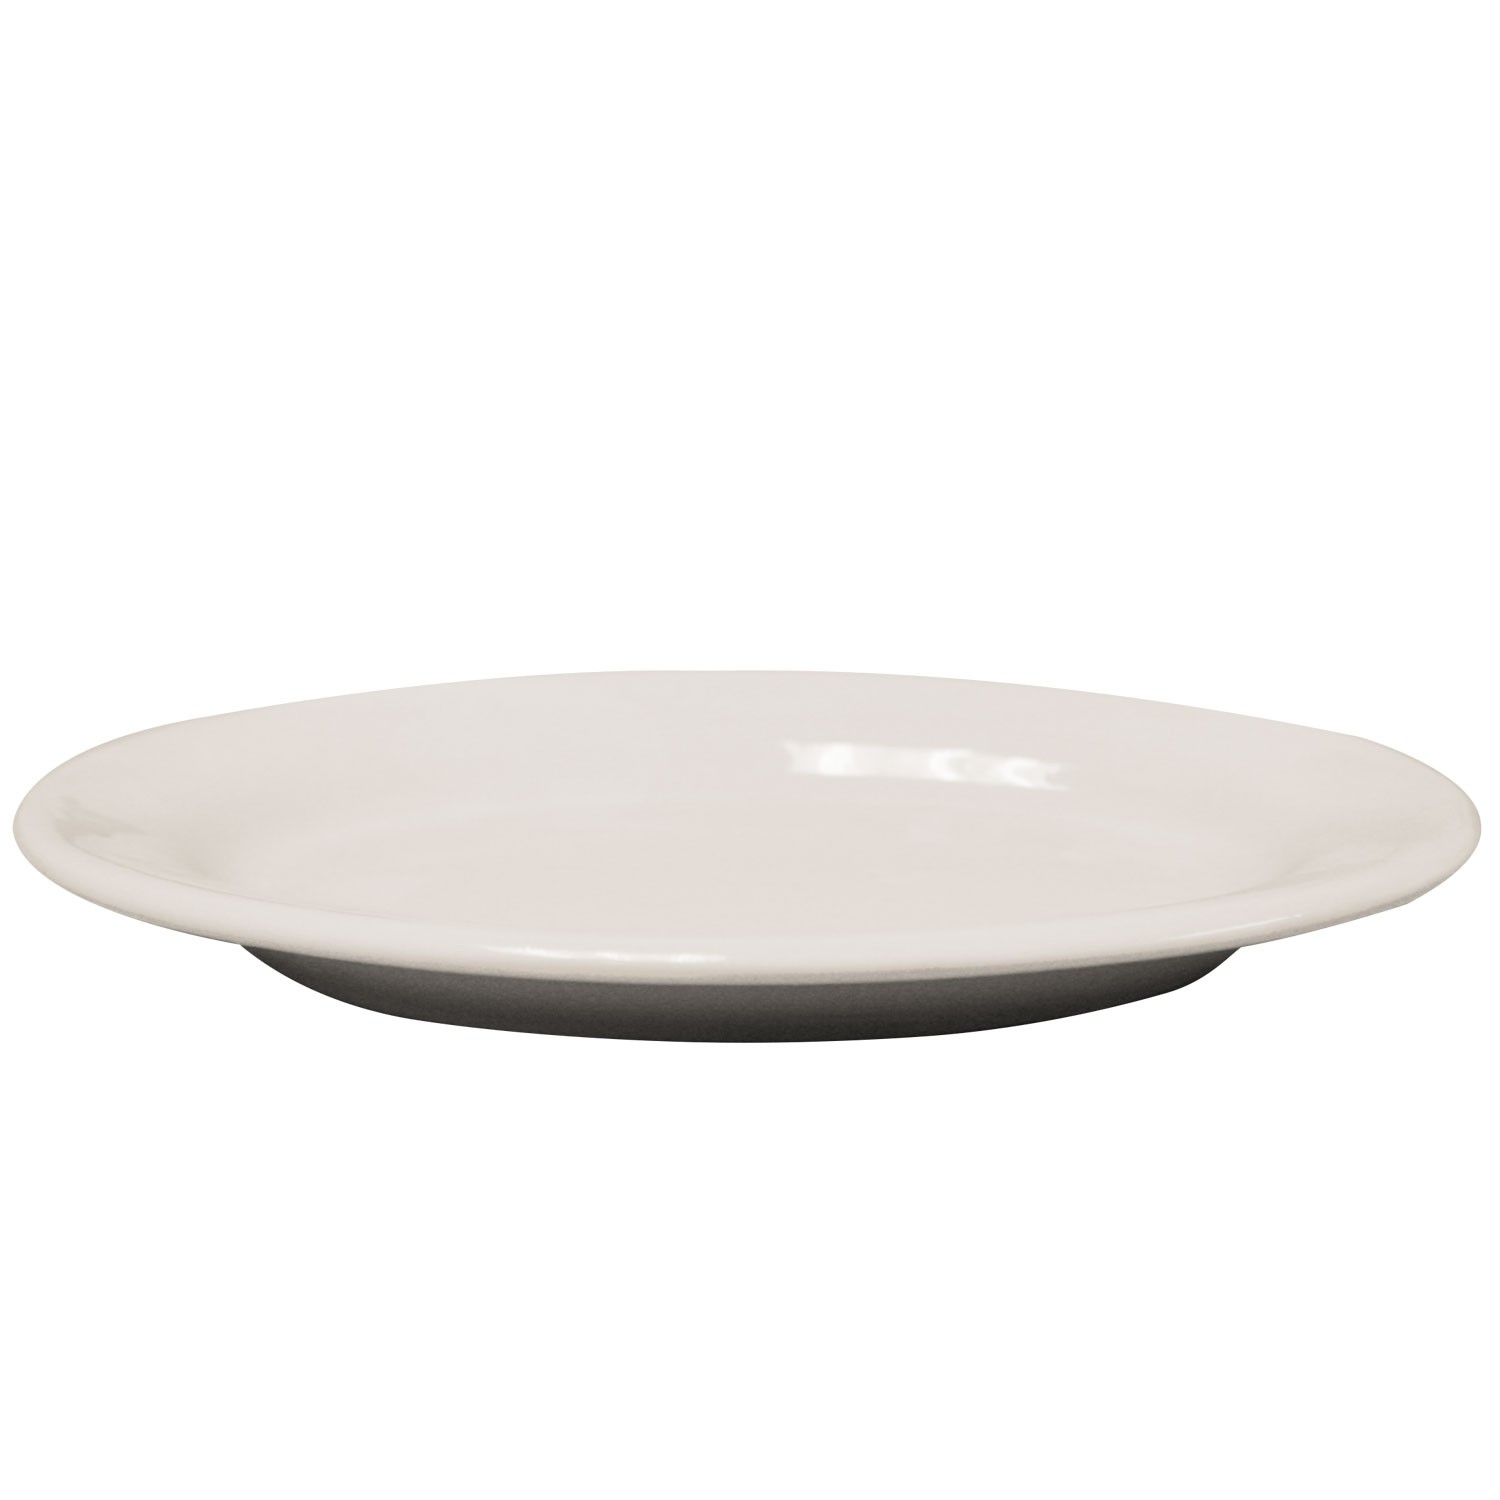 Vertex China BRE-14 Platter - 1 doz